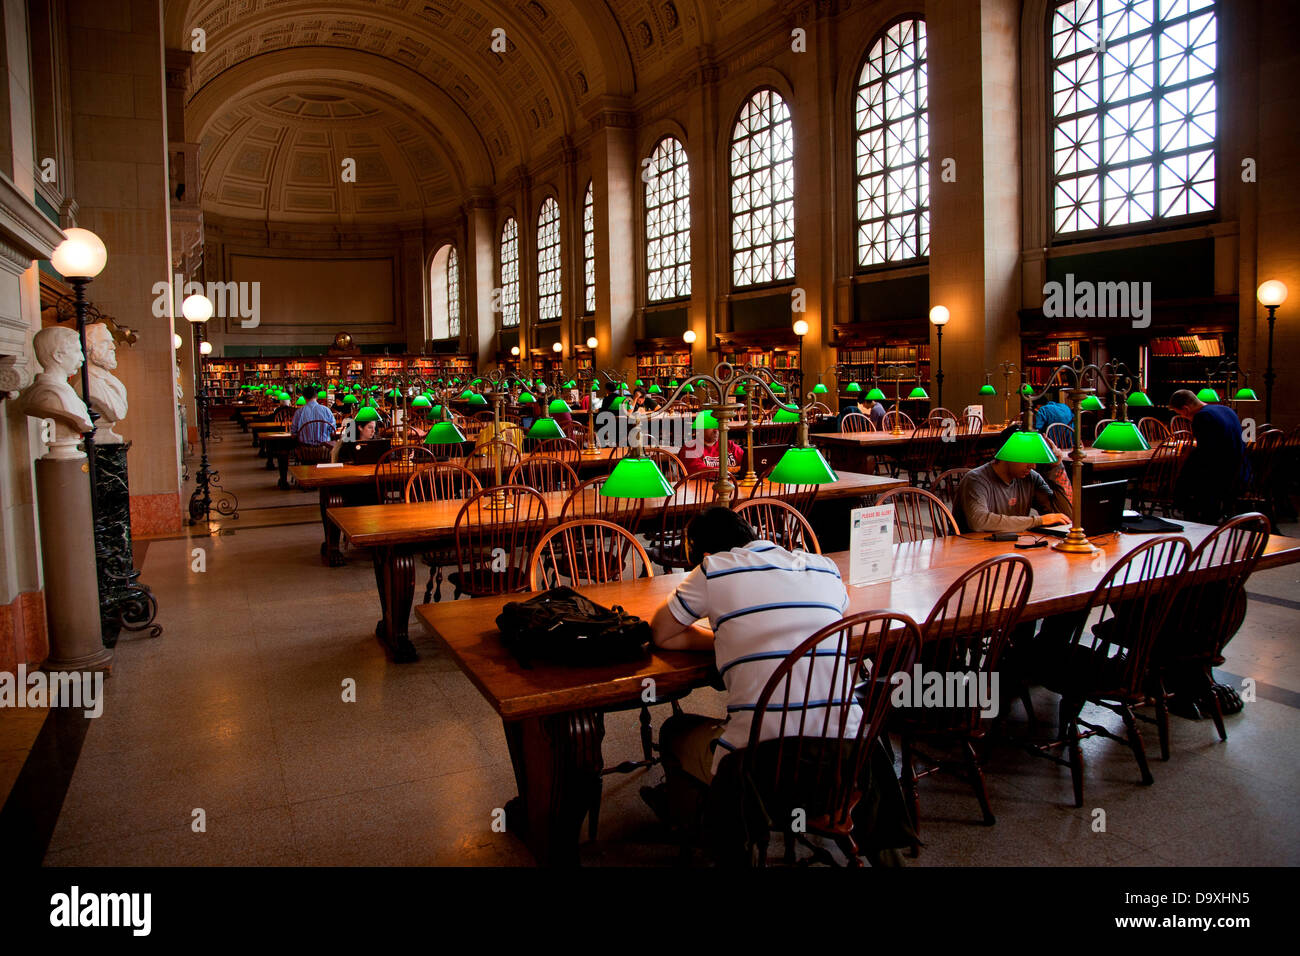 Interior View Of Reading Area Of Historic Boston Public Library, McKim  Building, Boston,